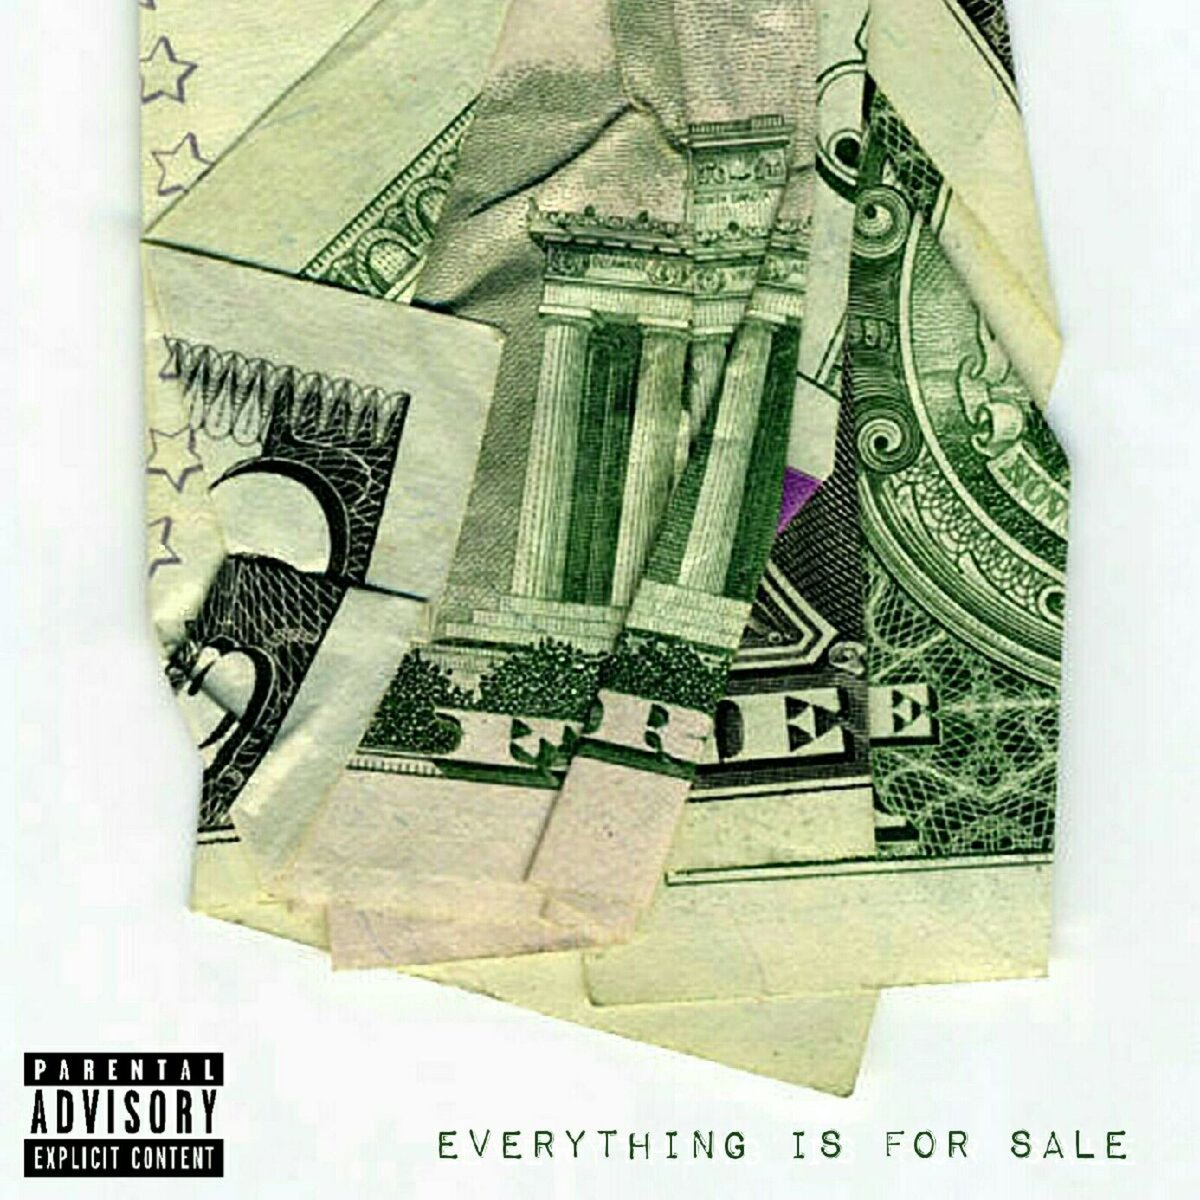 """Two different projects, two different artists, same title  """"Everything is For Sale"""" by @_anxt, released on December 12, 2018  """"Everything is For Sale"""" by @WS_Boogie, released on January 24, 2019  #MusicExcellence #SupportArt #FILO   https:// open.spotify.com/album/14drLk9r MpA7GPk1MRvRE5  …    https:// open.spotify.com/album/0ti5fYR5 neB3gpKxmAgAWD  … <br>http://pic.twitter.com/FGNJKFQnFW"""